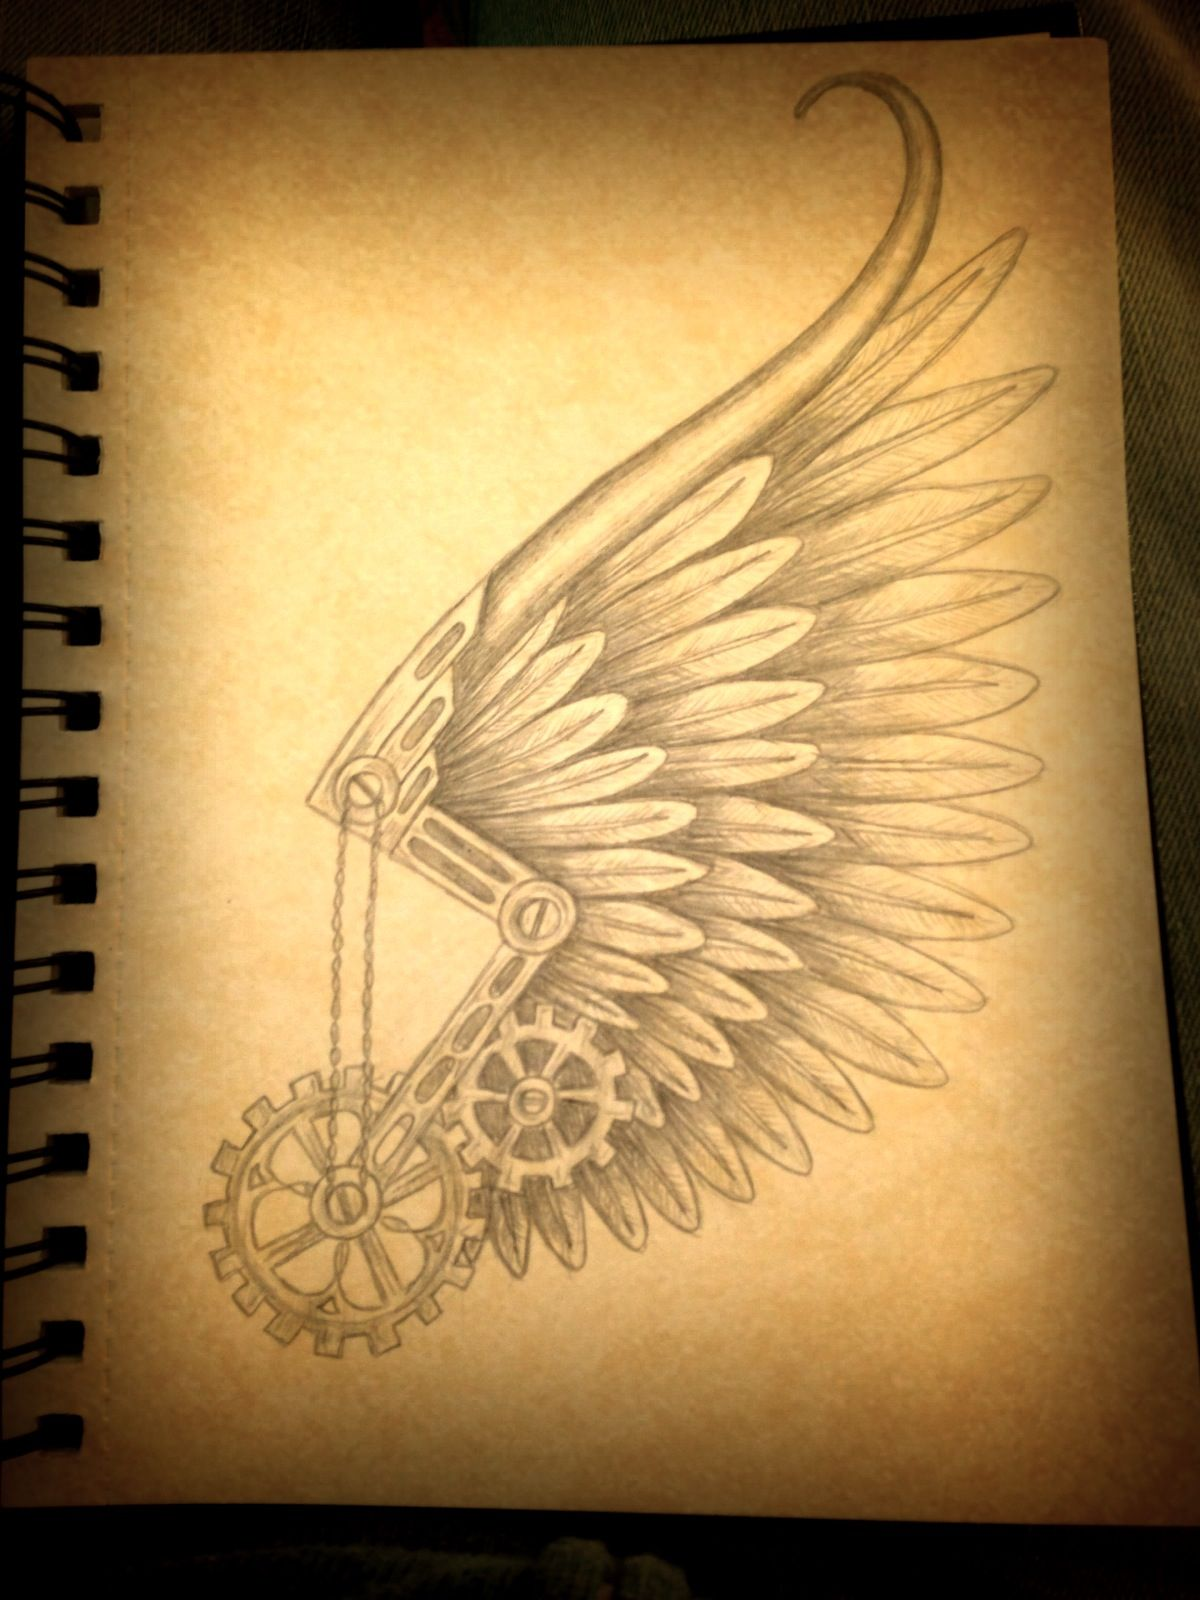 steampunk hermes wing tattoo design tattoos pinterest tattoo designs tattoo and tatting. Black Bedroom Furniture Sets. Home Design Ideas